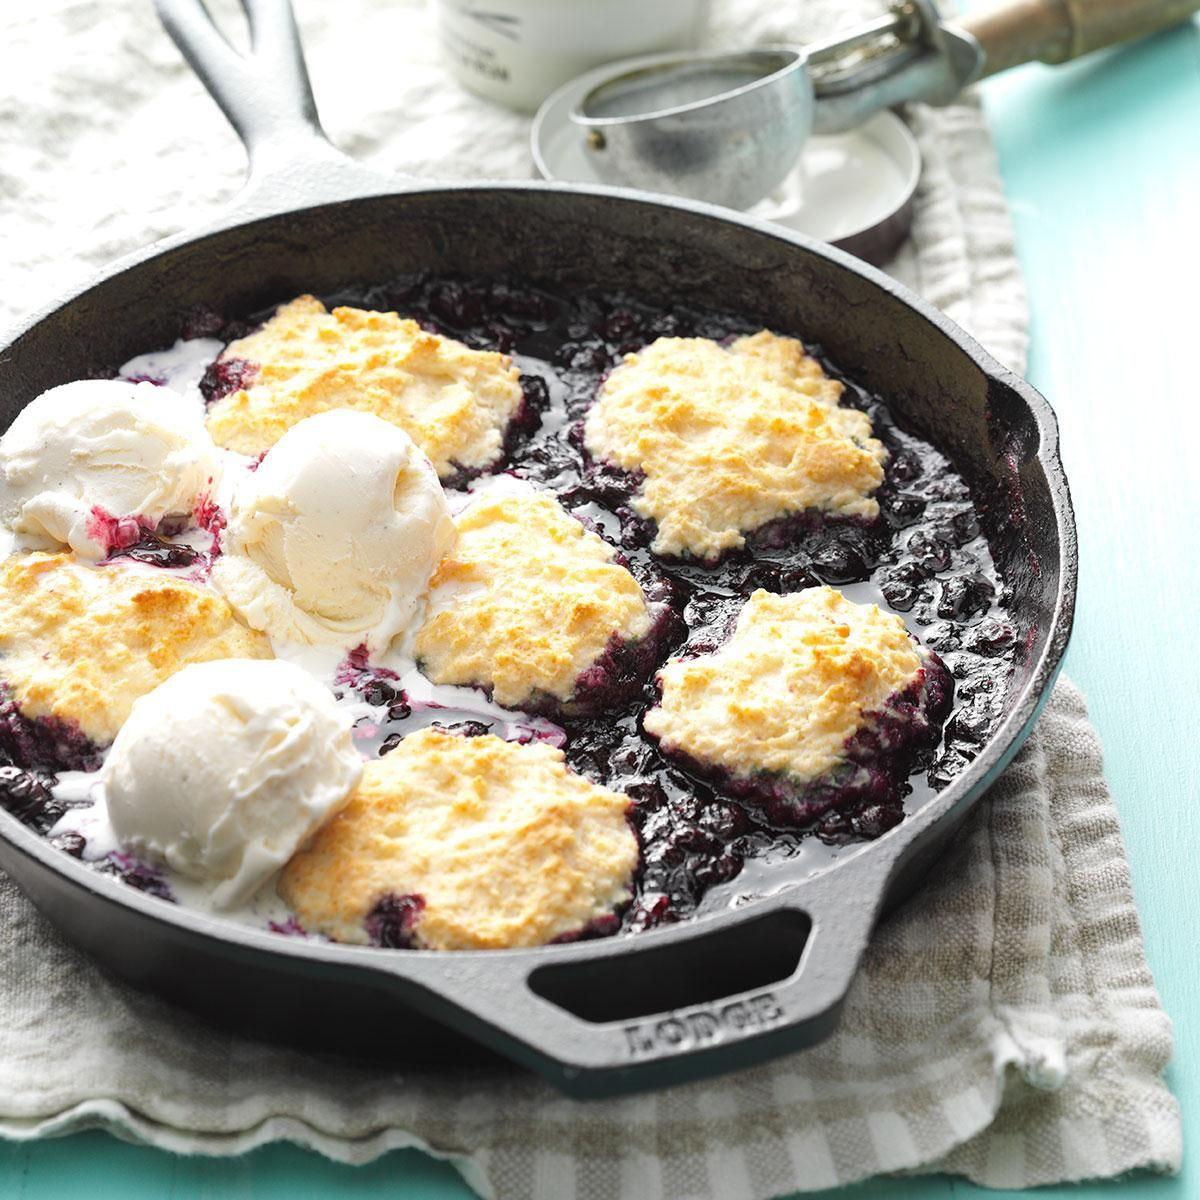 30 Side Dishes And Desserts To Try: Skillet Blueberry Slump